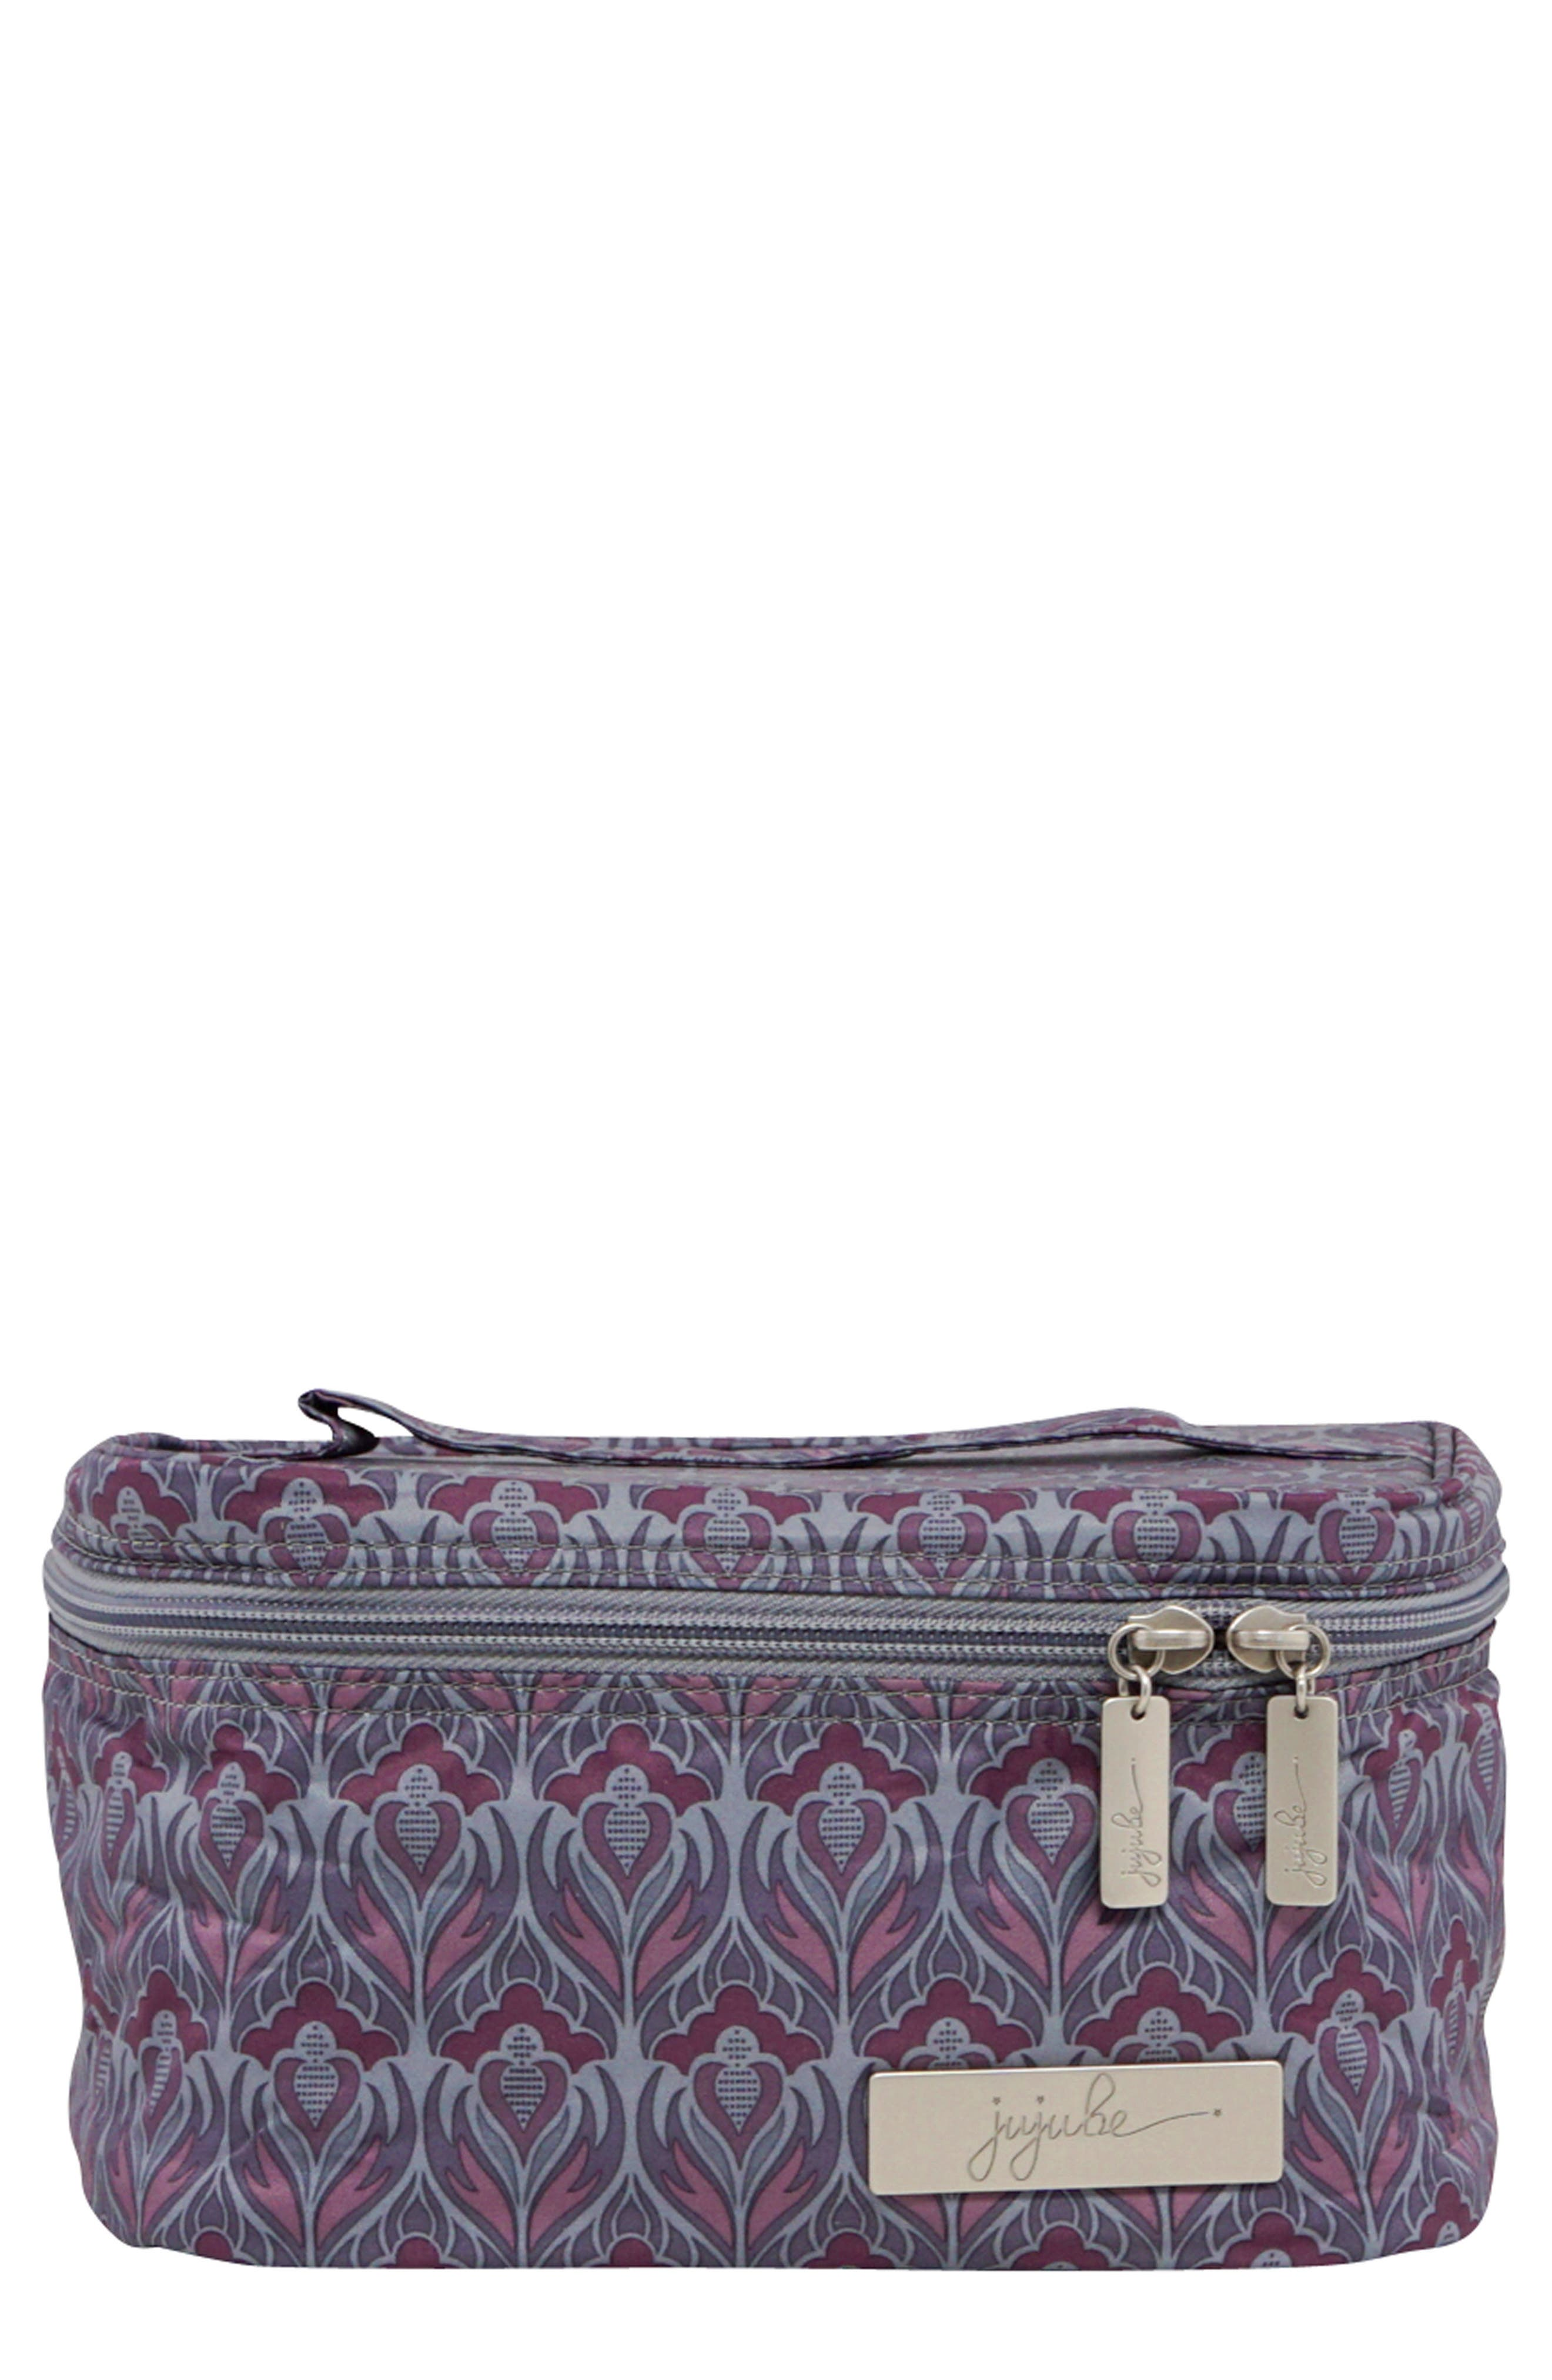 Legacy Be Ready Cosmetics Travel Case,                         Main,                         color, 020